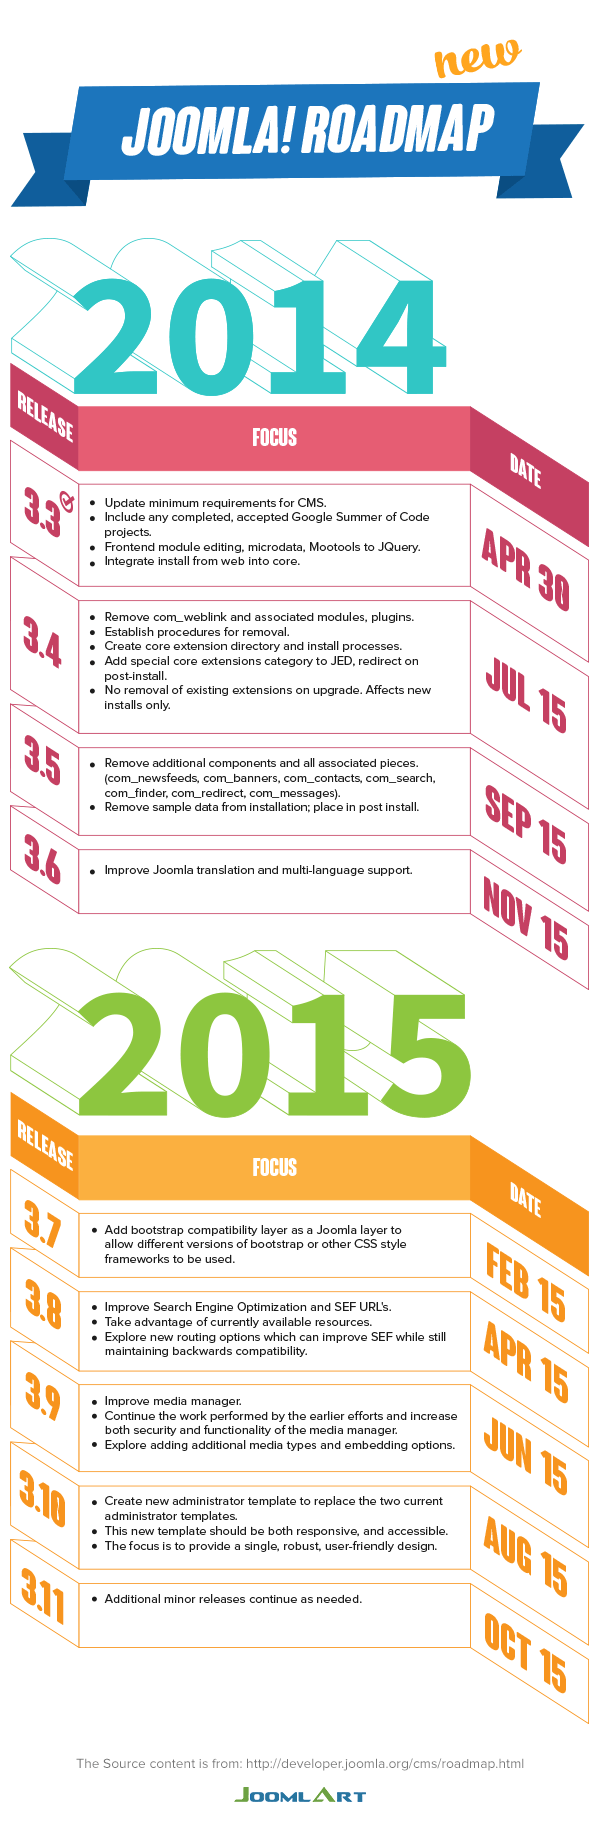 Joomla roadmap for 2014-2015